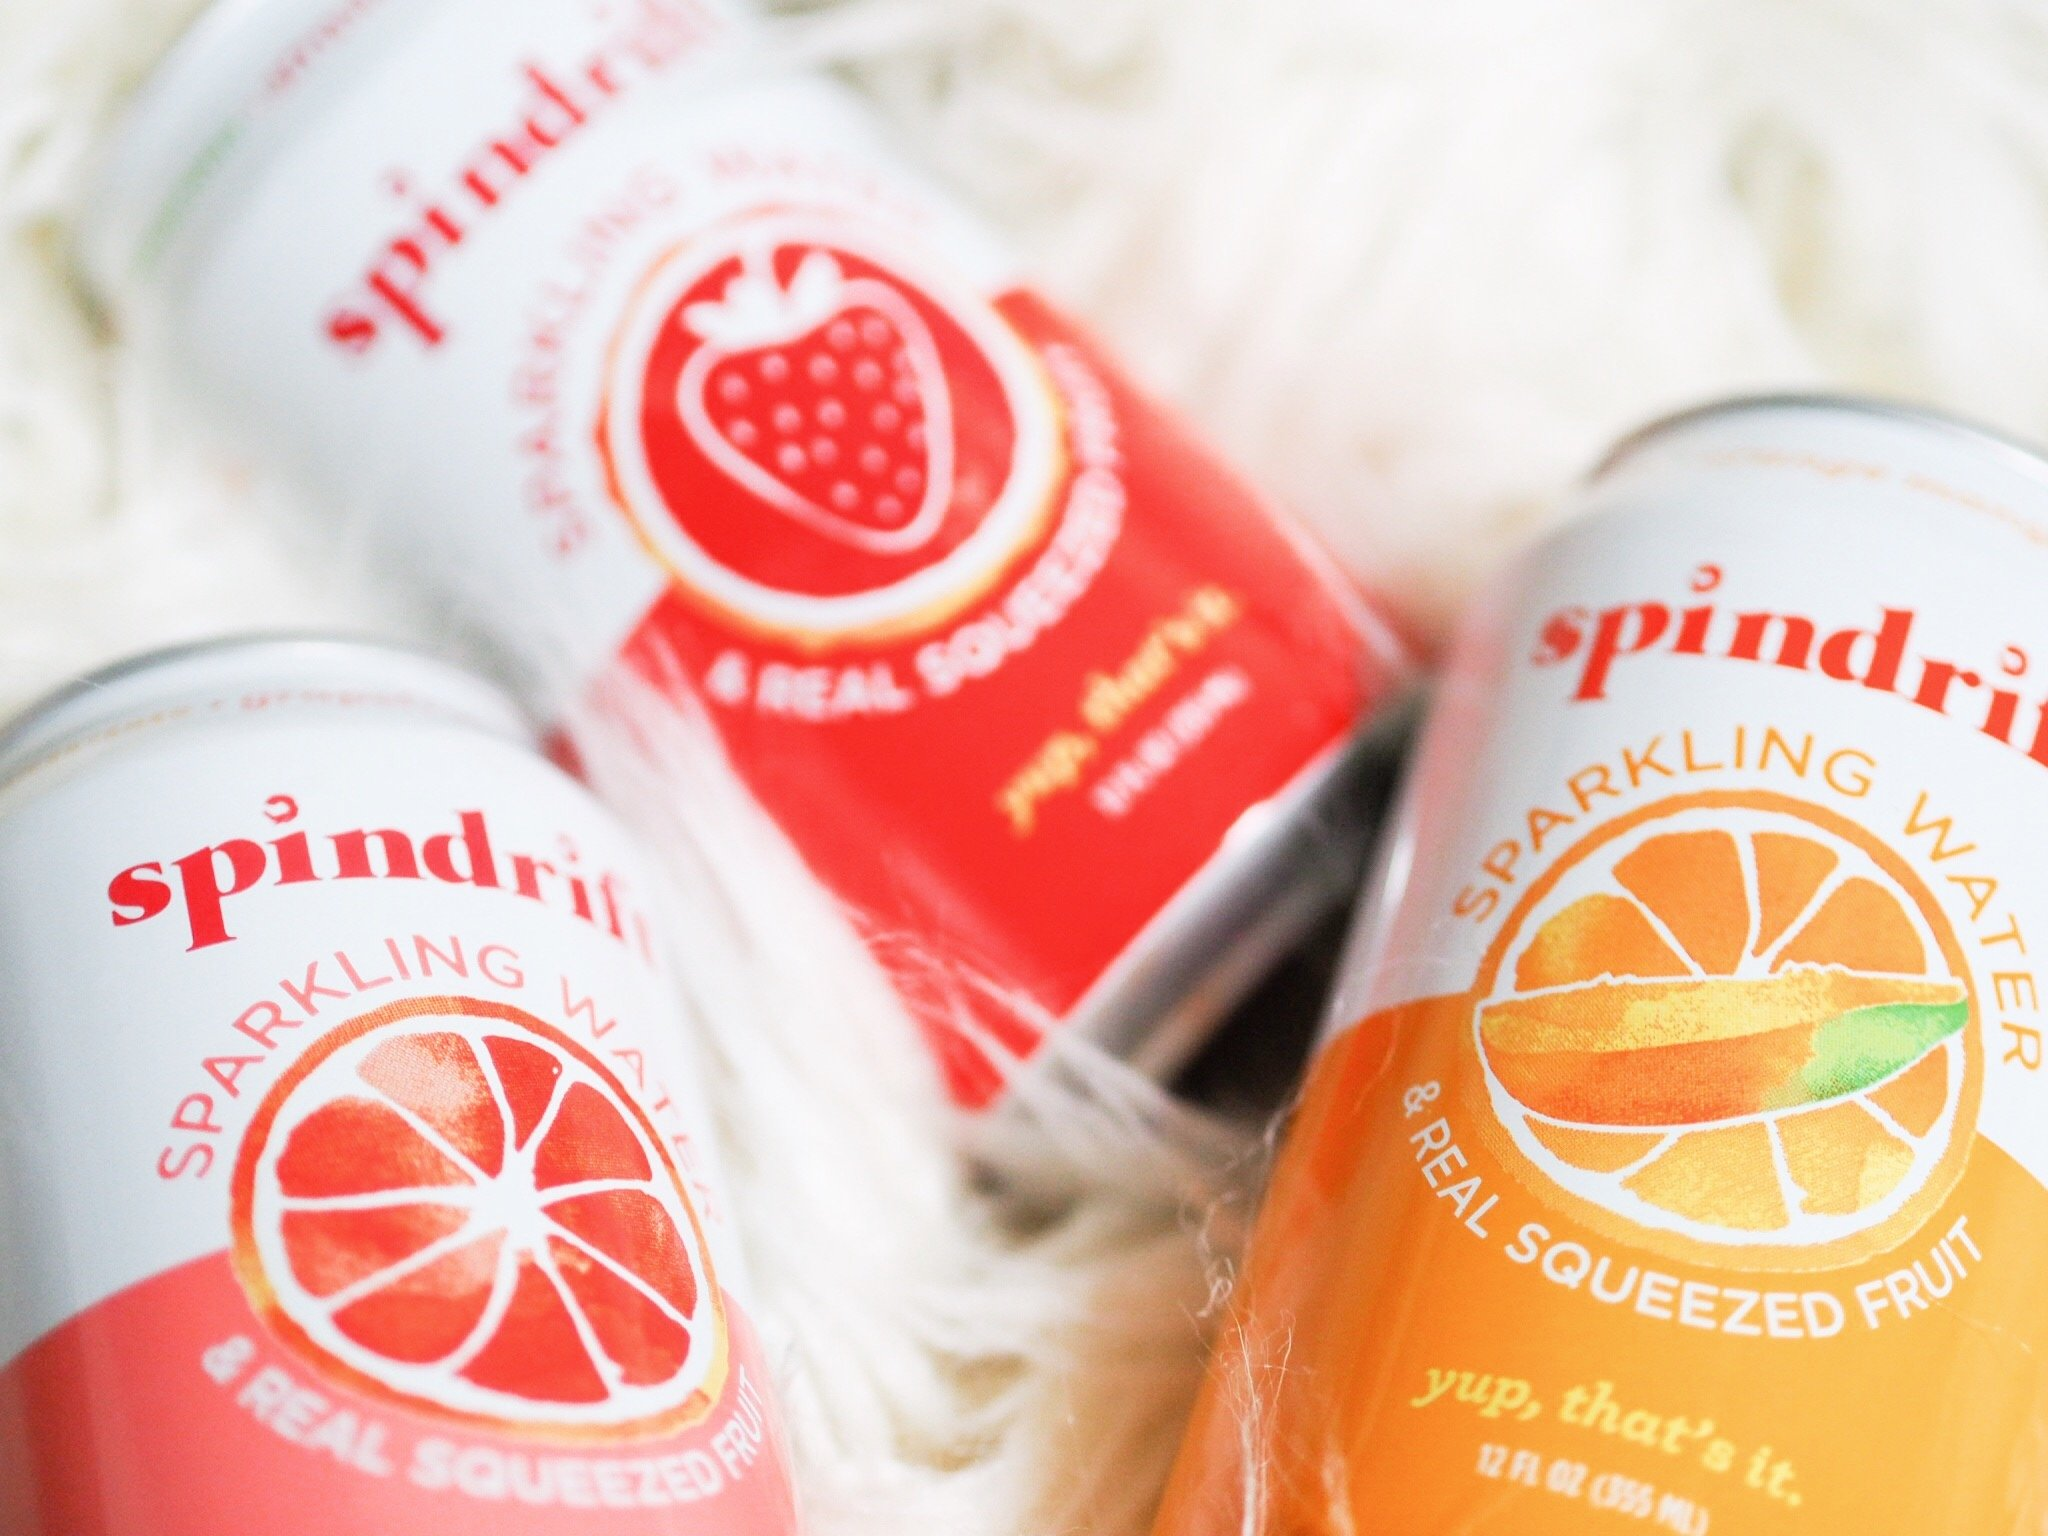 Kelsey of Blondes & Bagels talks staying refreshed and hydrated this summer with Spindrift sparkling water!